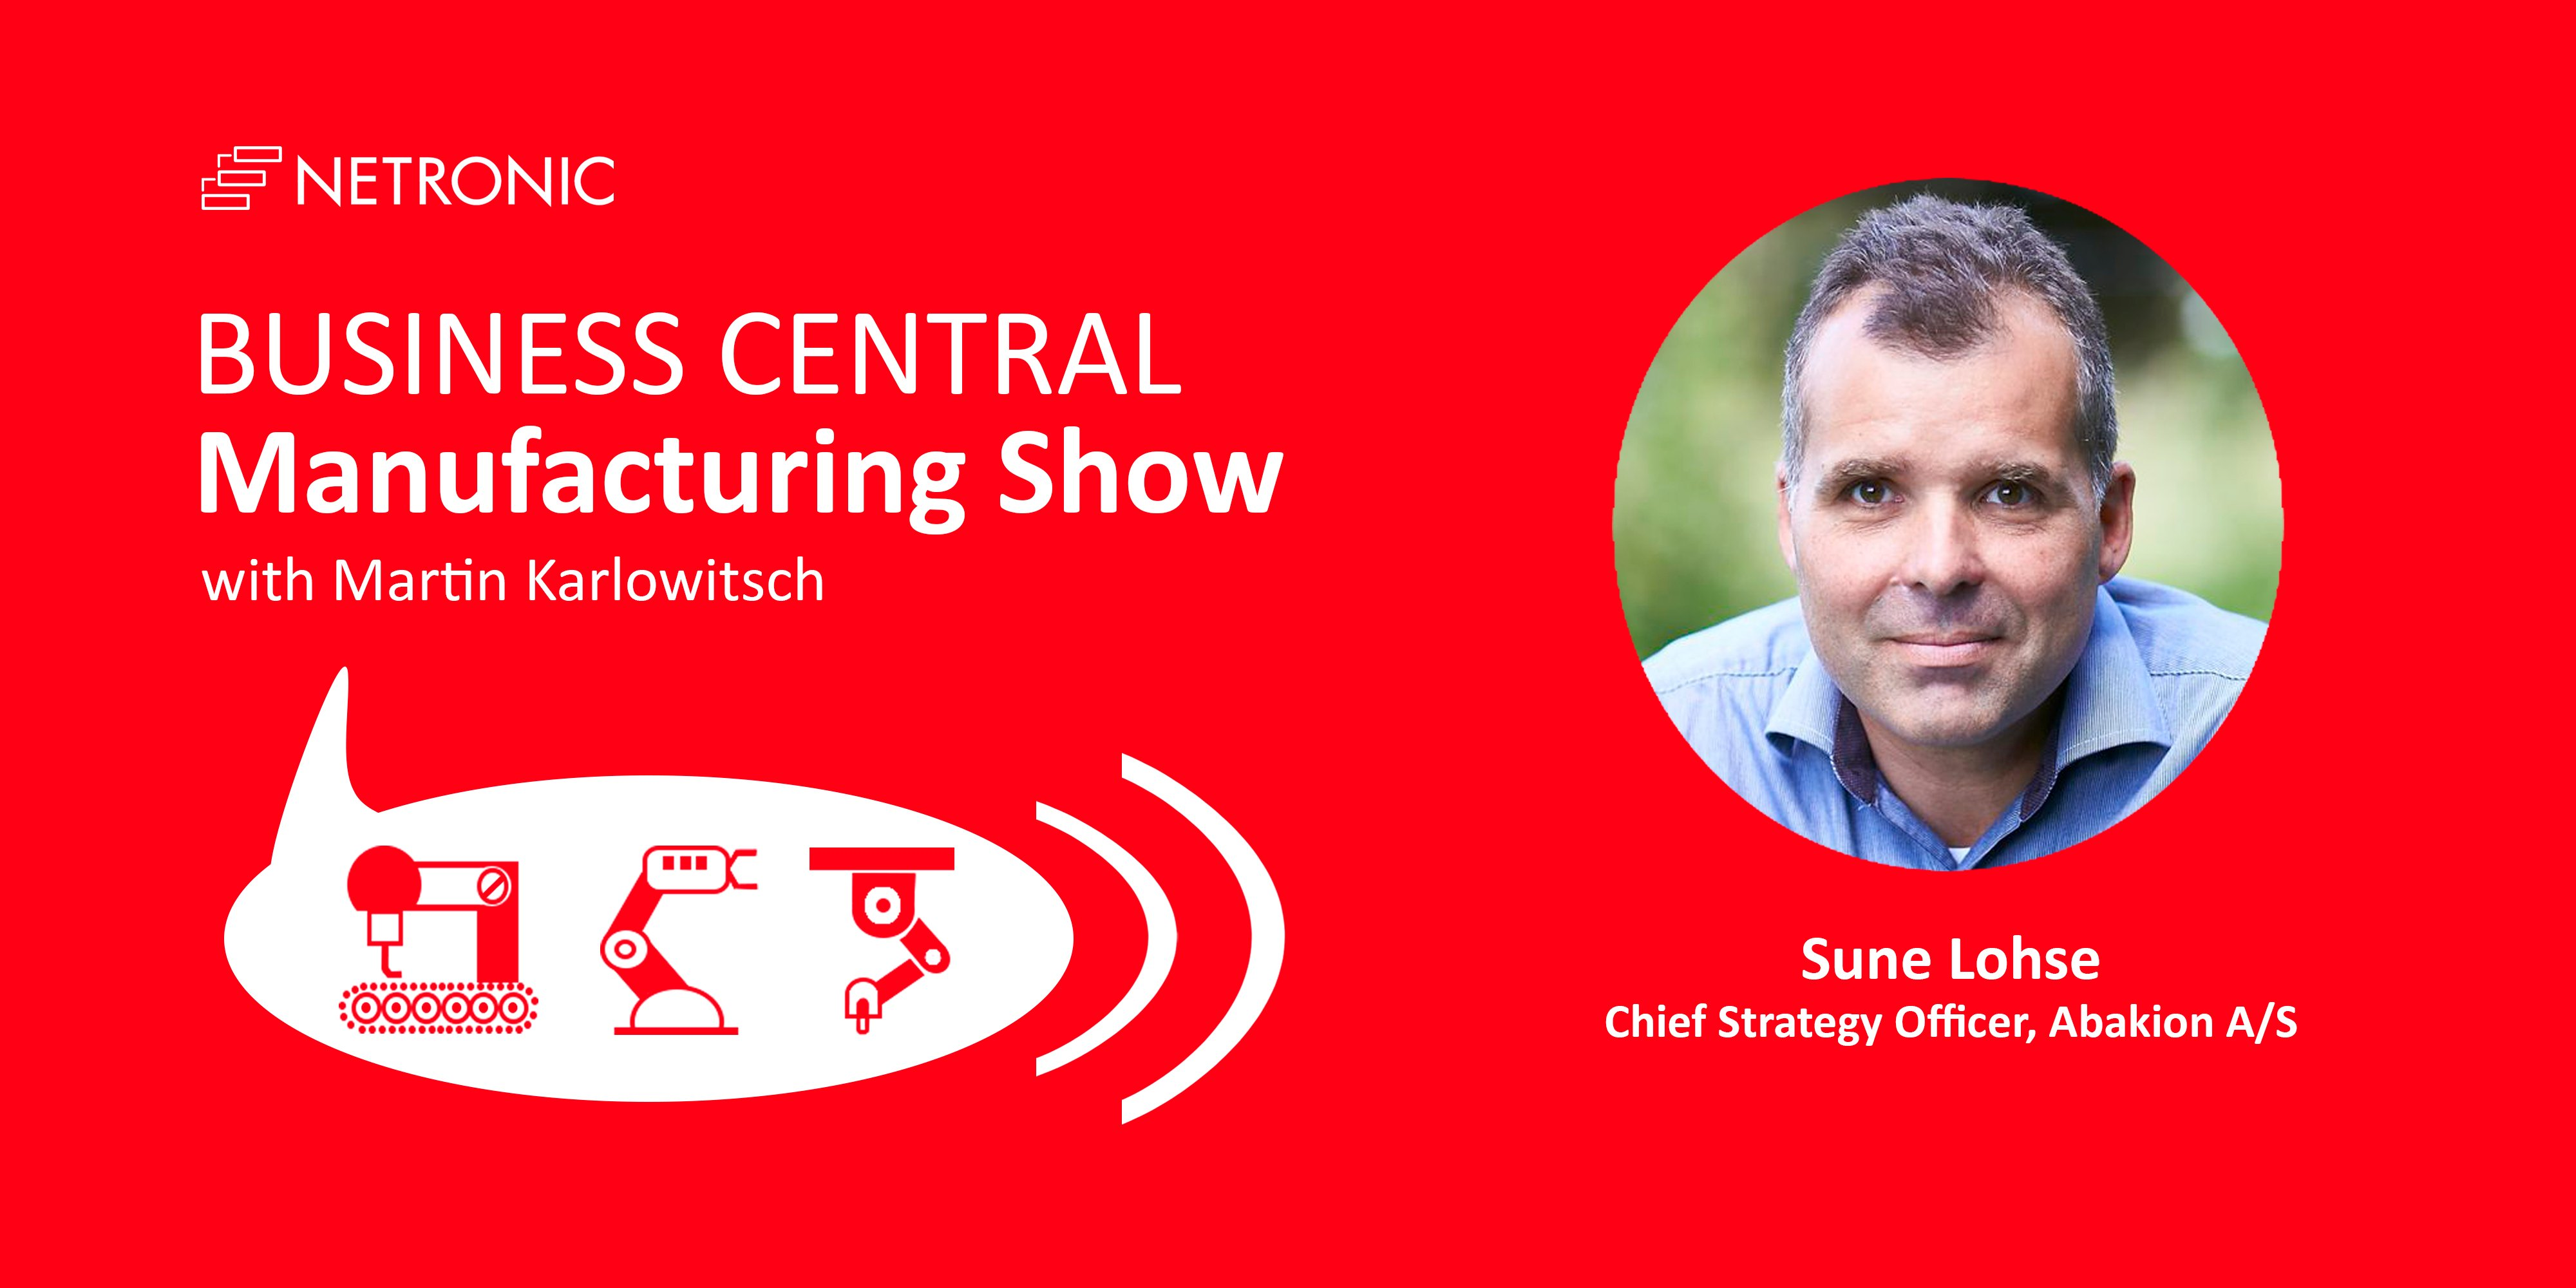 Business Central Manufacturing Show - Episode 4 - Sune Lohse